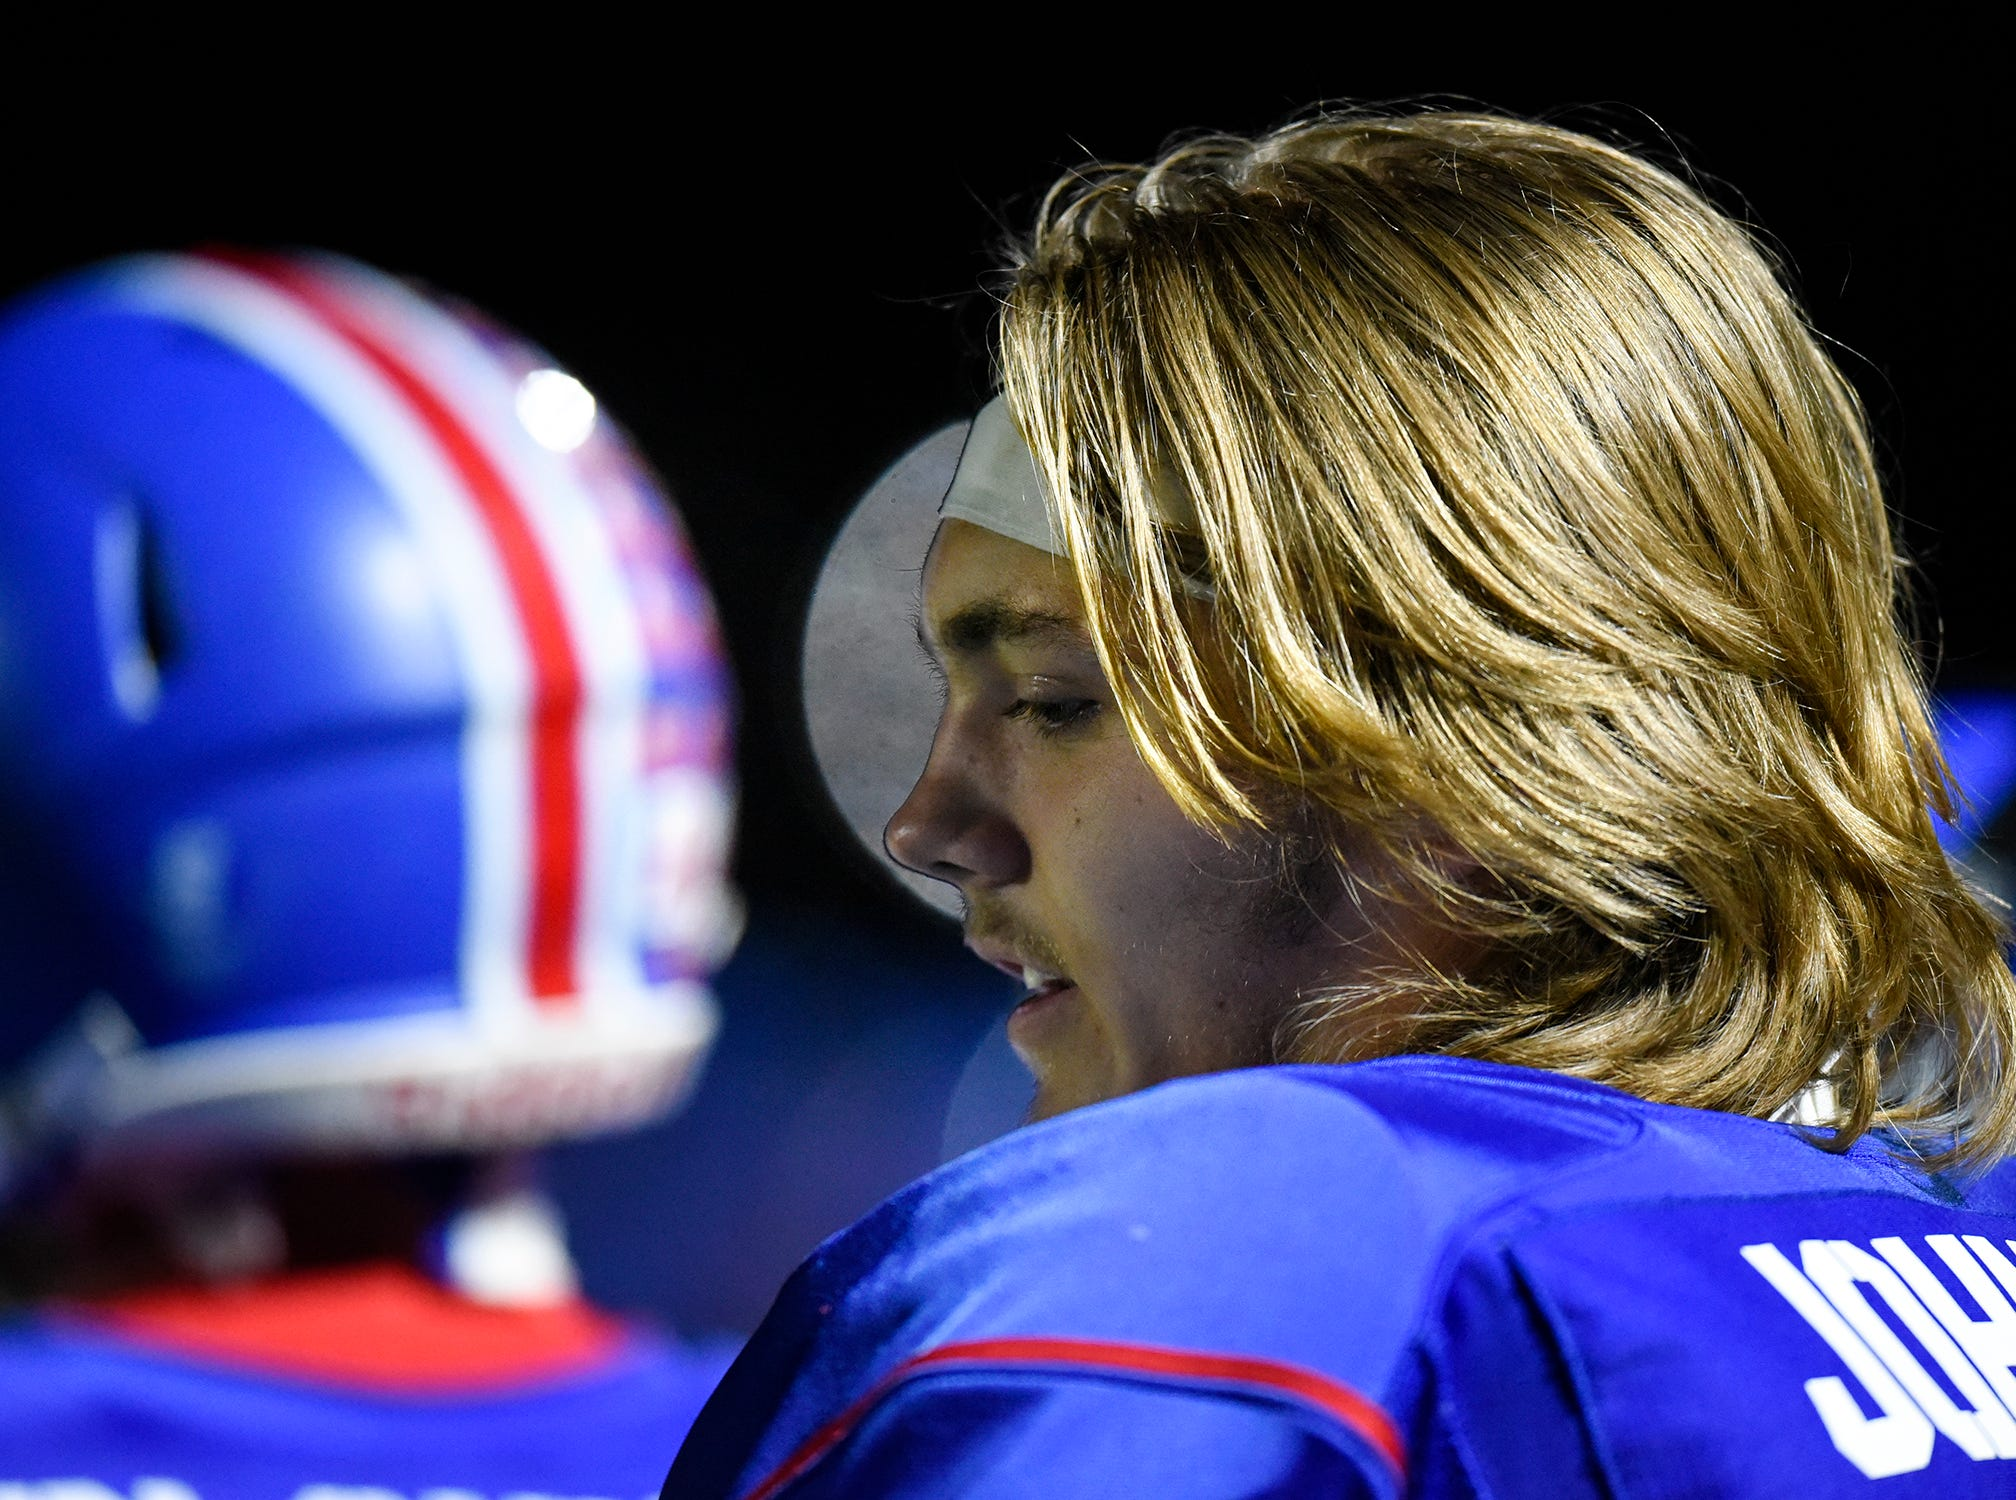 Apollo's Logan Johnson talks with other players on the sidelines during the Tuesday, Oct. 23, game against Little Falls in St. Cloud.